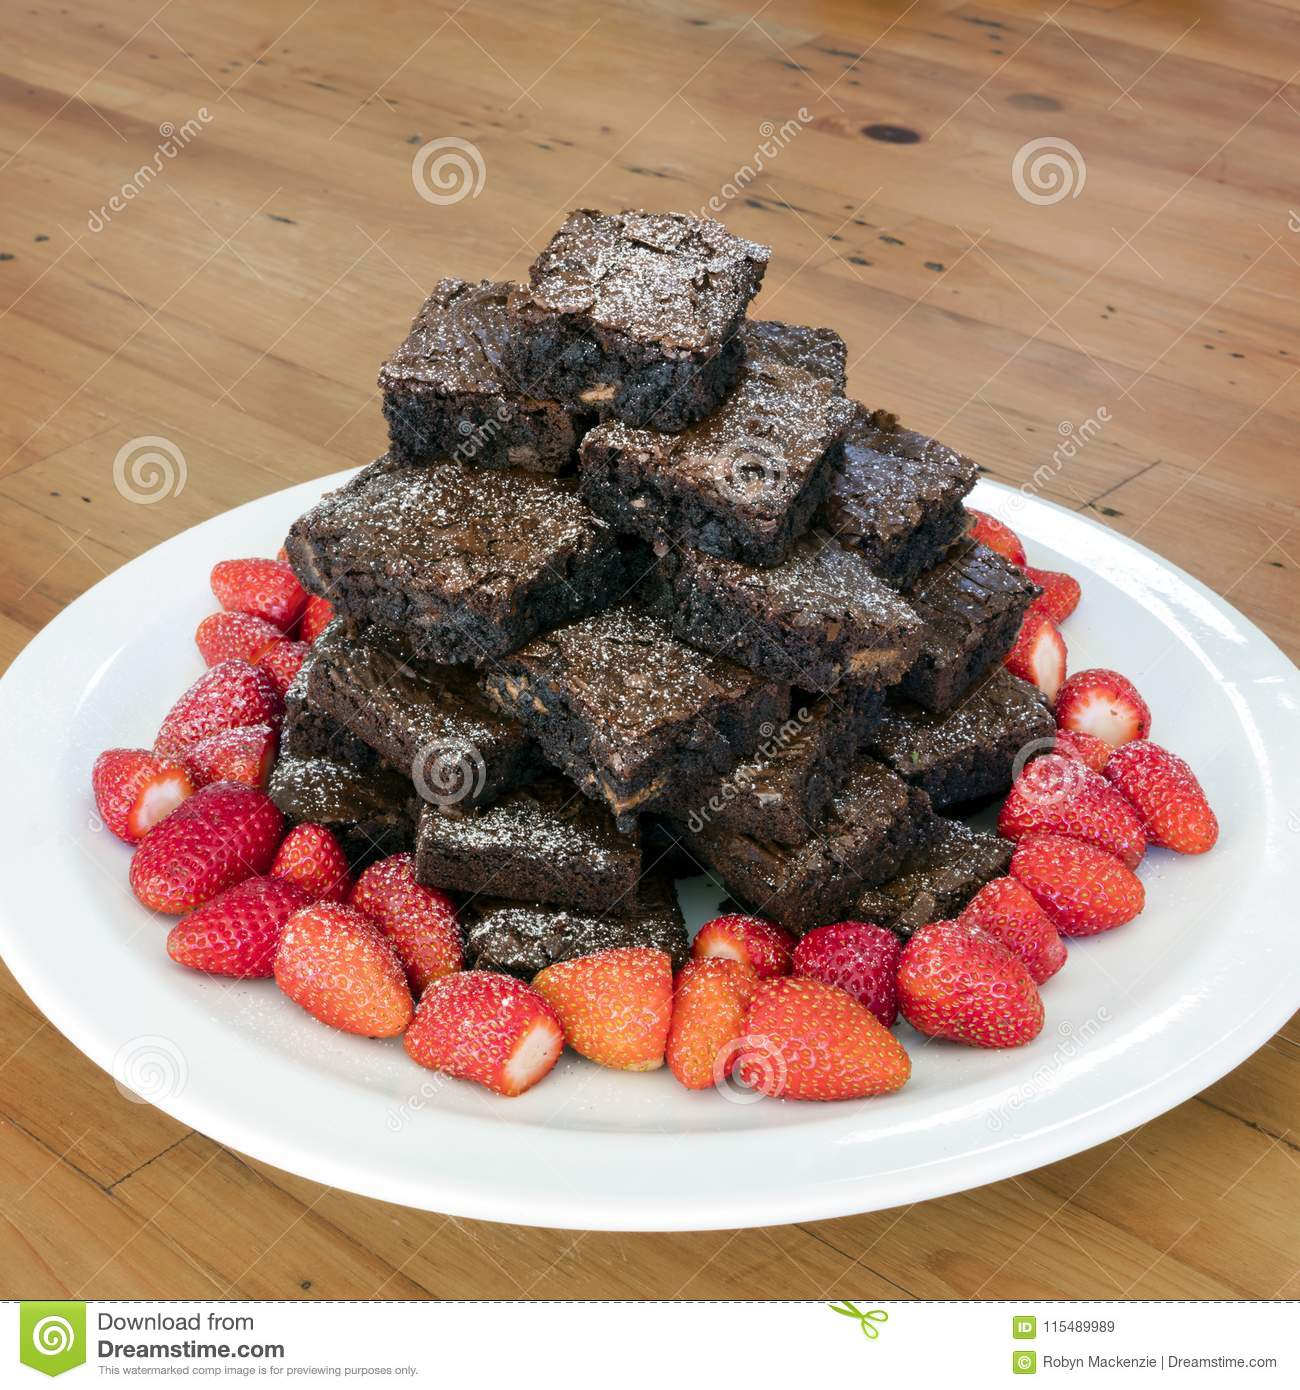 Brownie Tower Stack with Strawberries